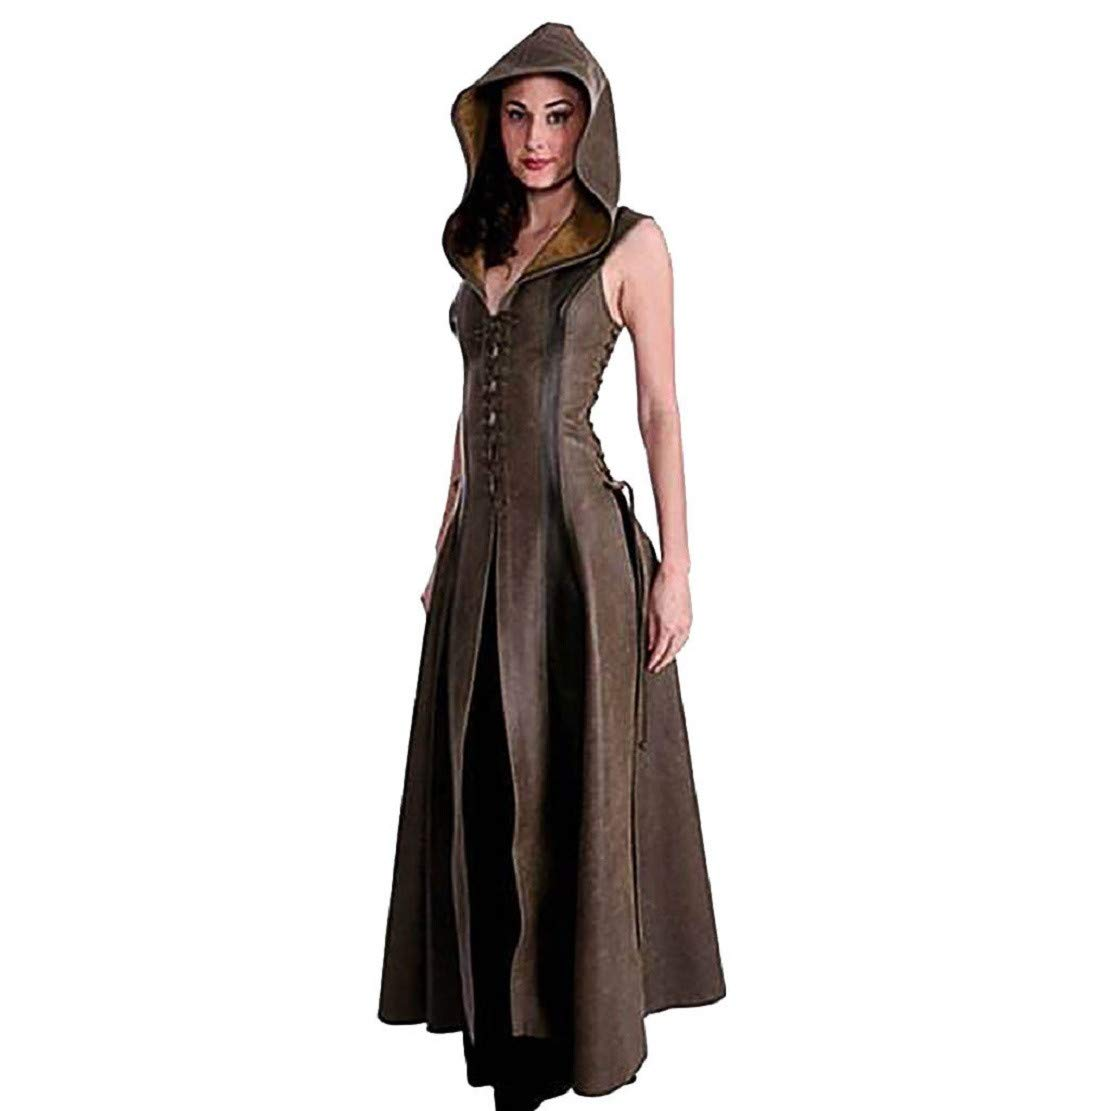 Women Vintage Gothic Faux Leather Hooded Lace up Maxi Dress Sleeveless Tank Dress Medieval Cosplay Costume by Lowprofile Brown